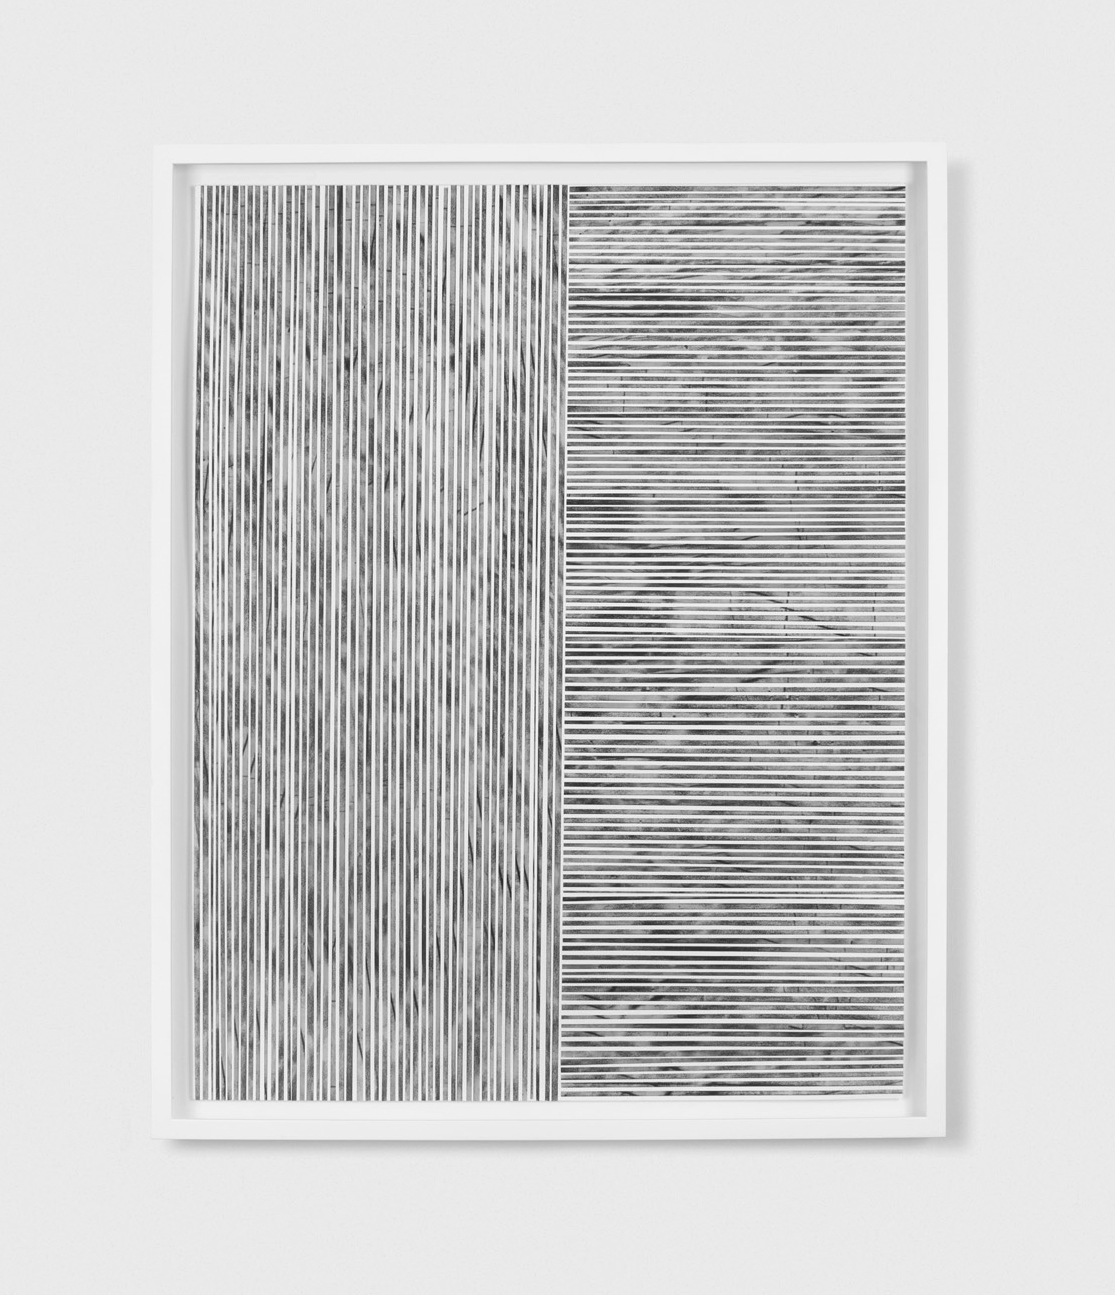 Untitled (the line between #2)  2014, charcoal and powdered graphite on translucent tape, cut and arranged on cotton paper, 22 x 28 inches